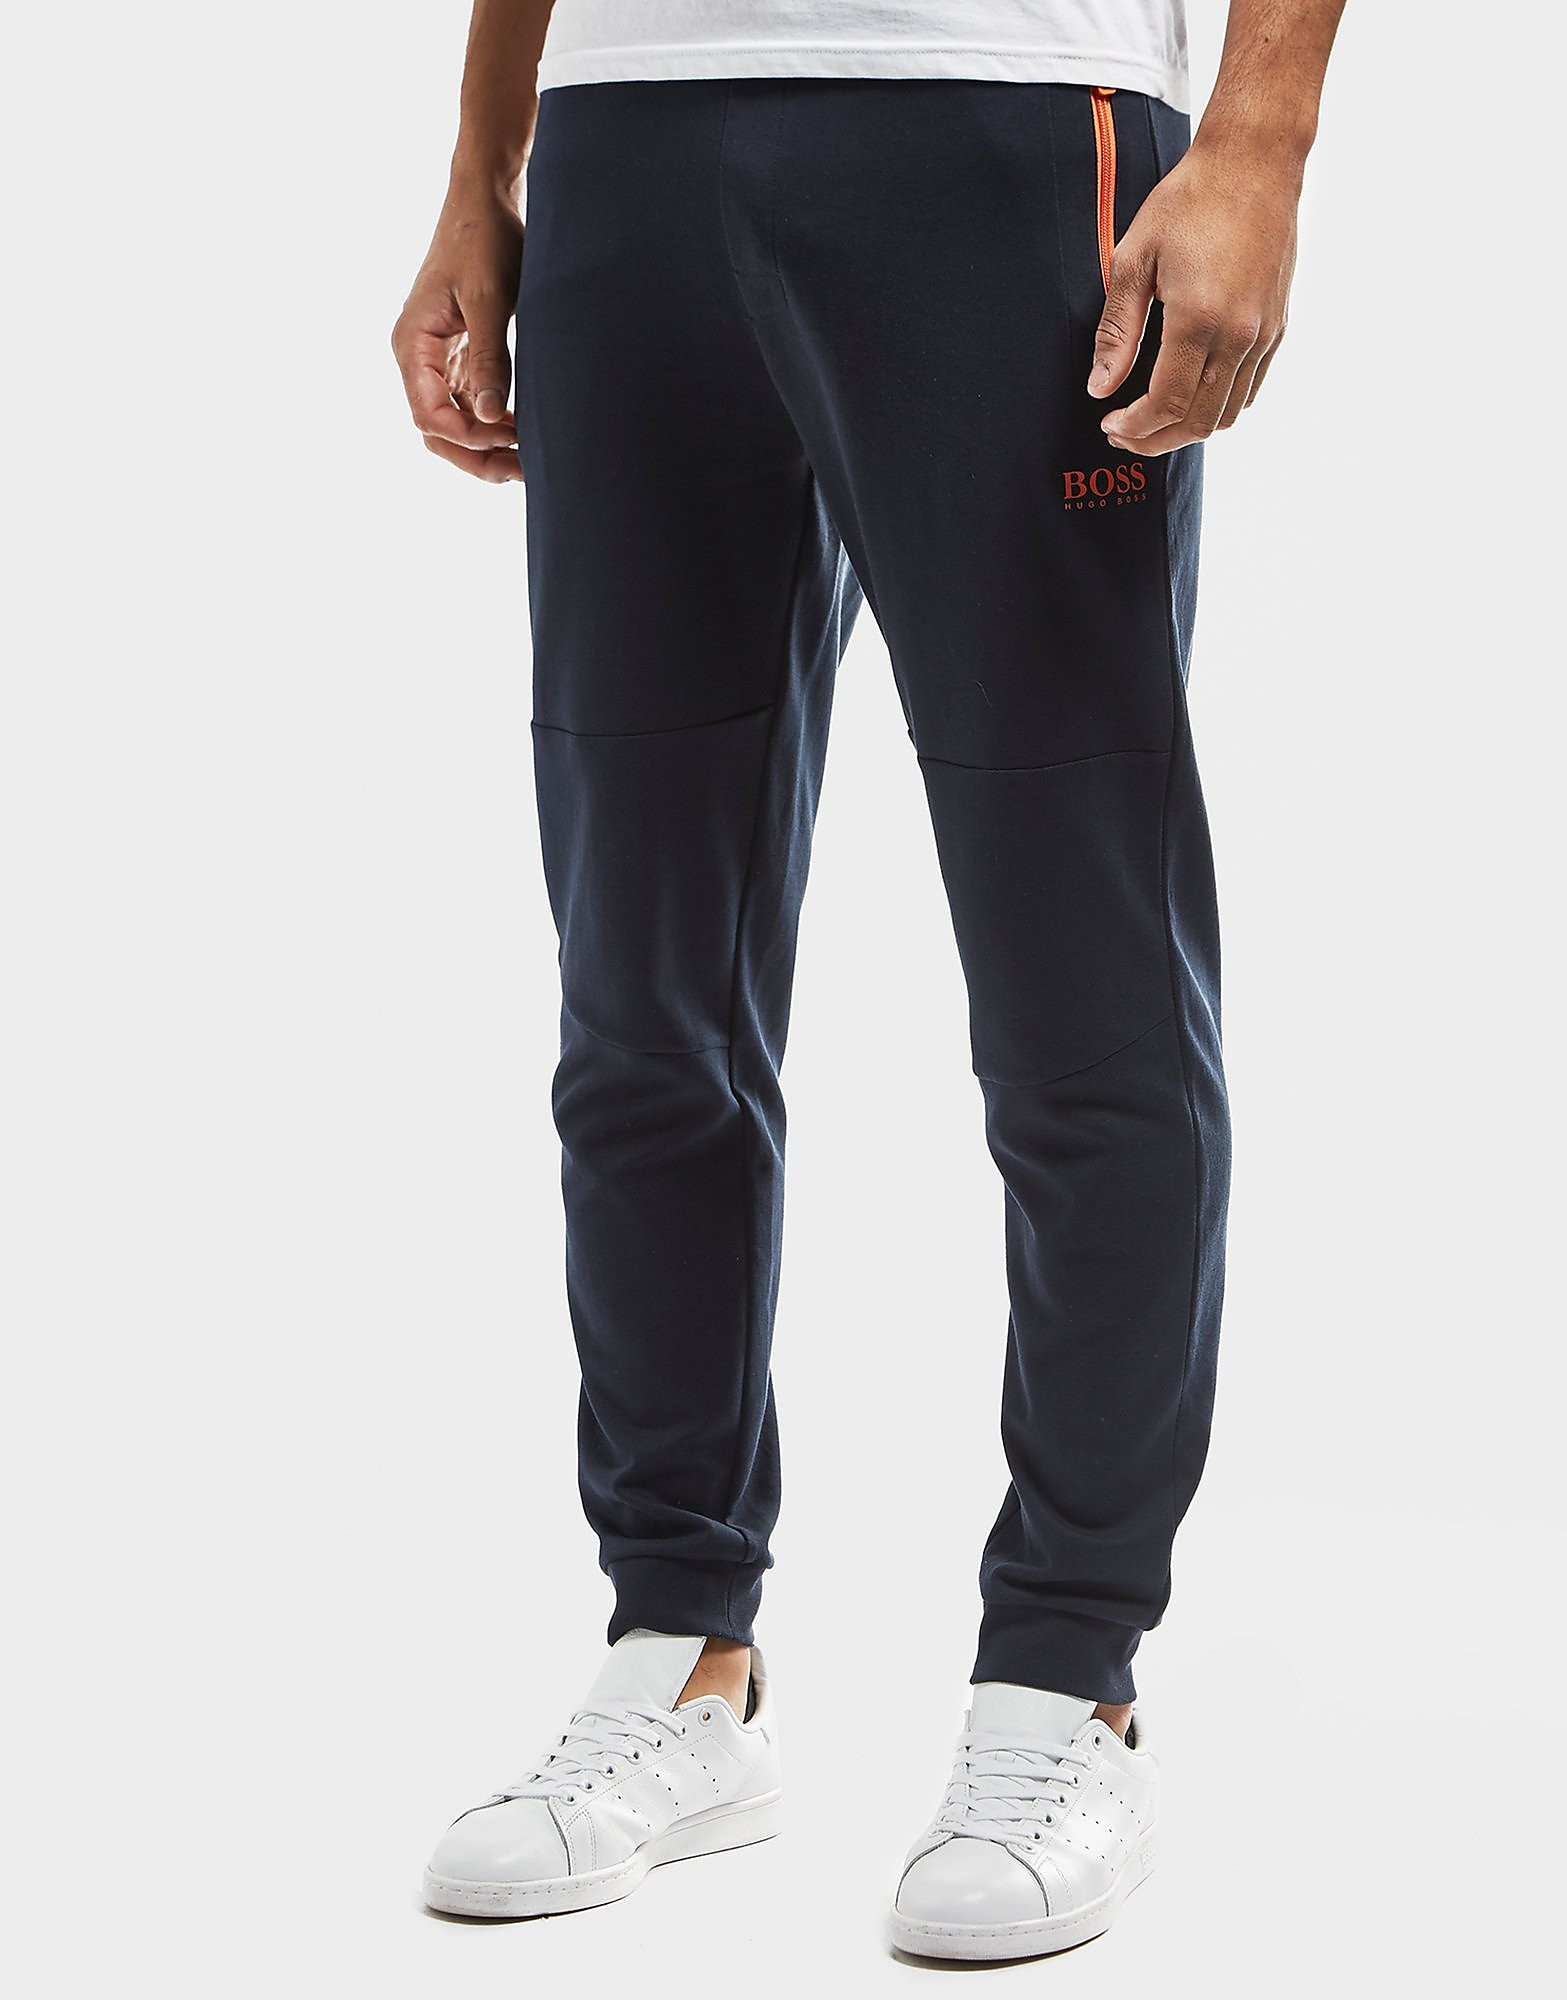 BOSS Contrast Track Pants